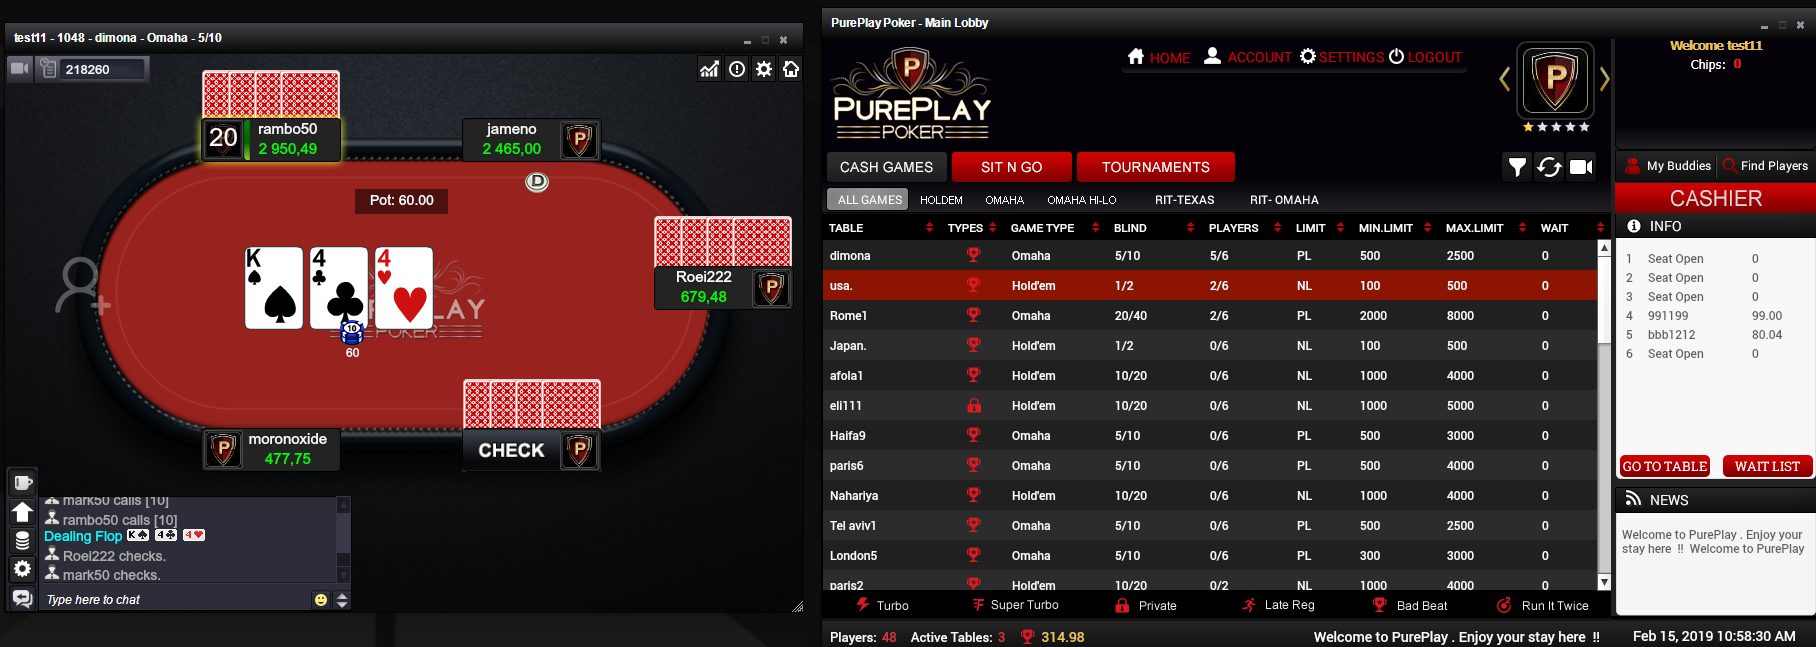 PurePlay Poker